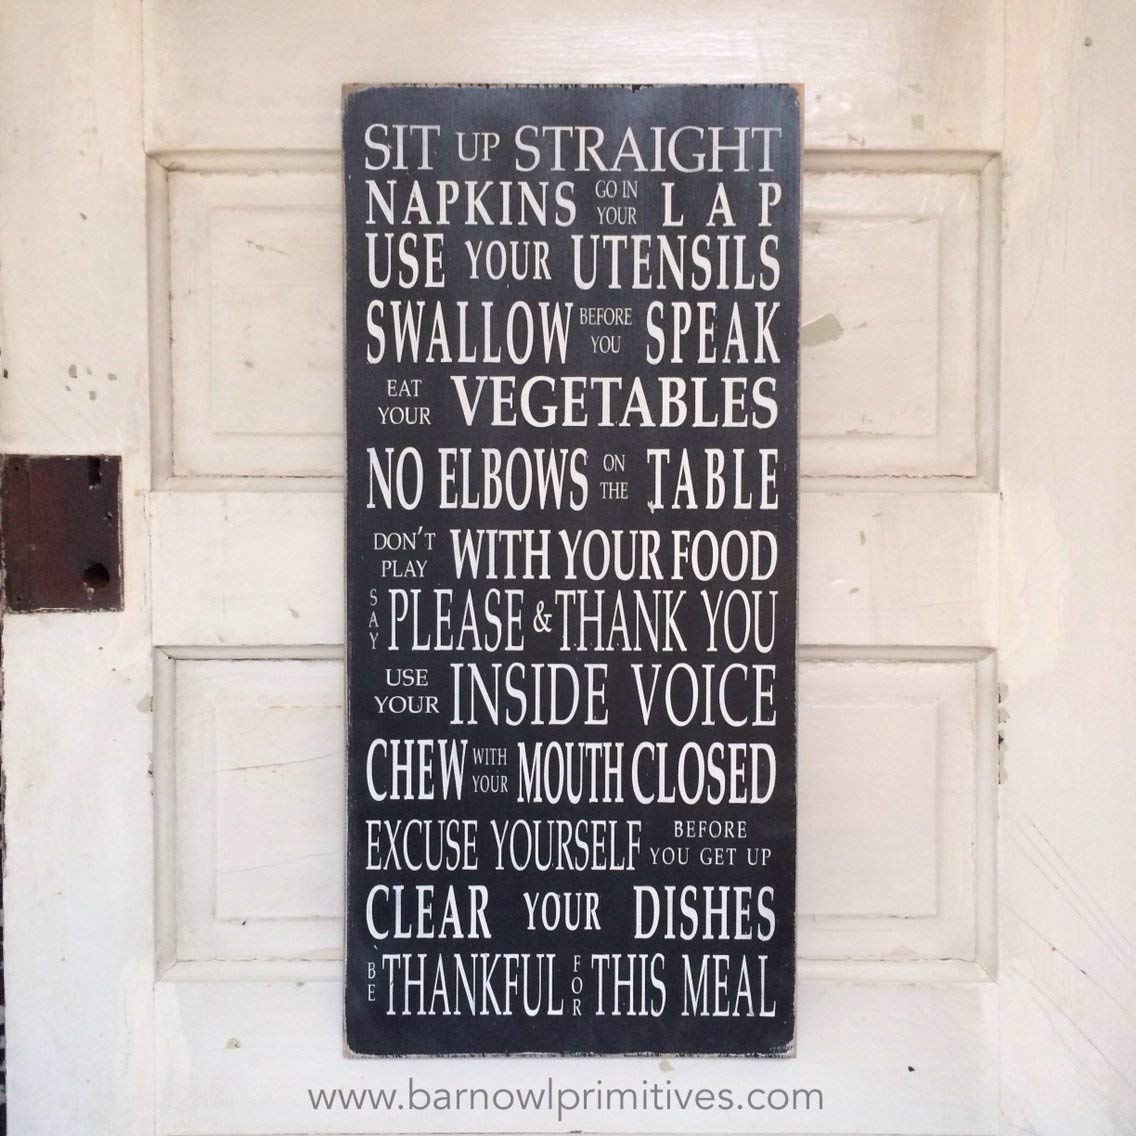 Table Manners Dinner Rules Wooden Painted Sign Typography Word Art in Black